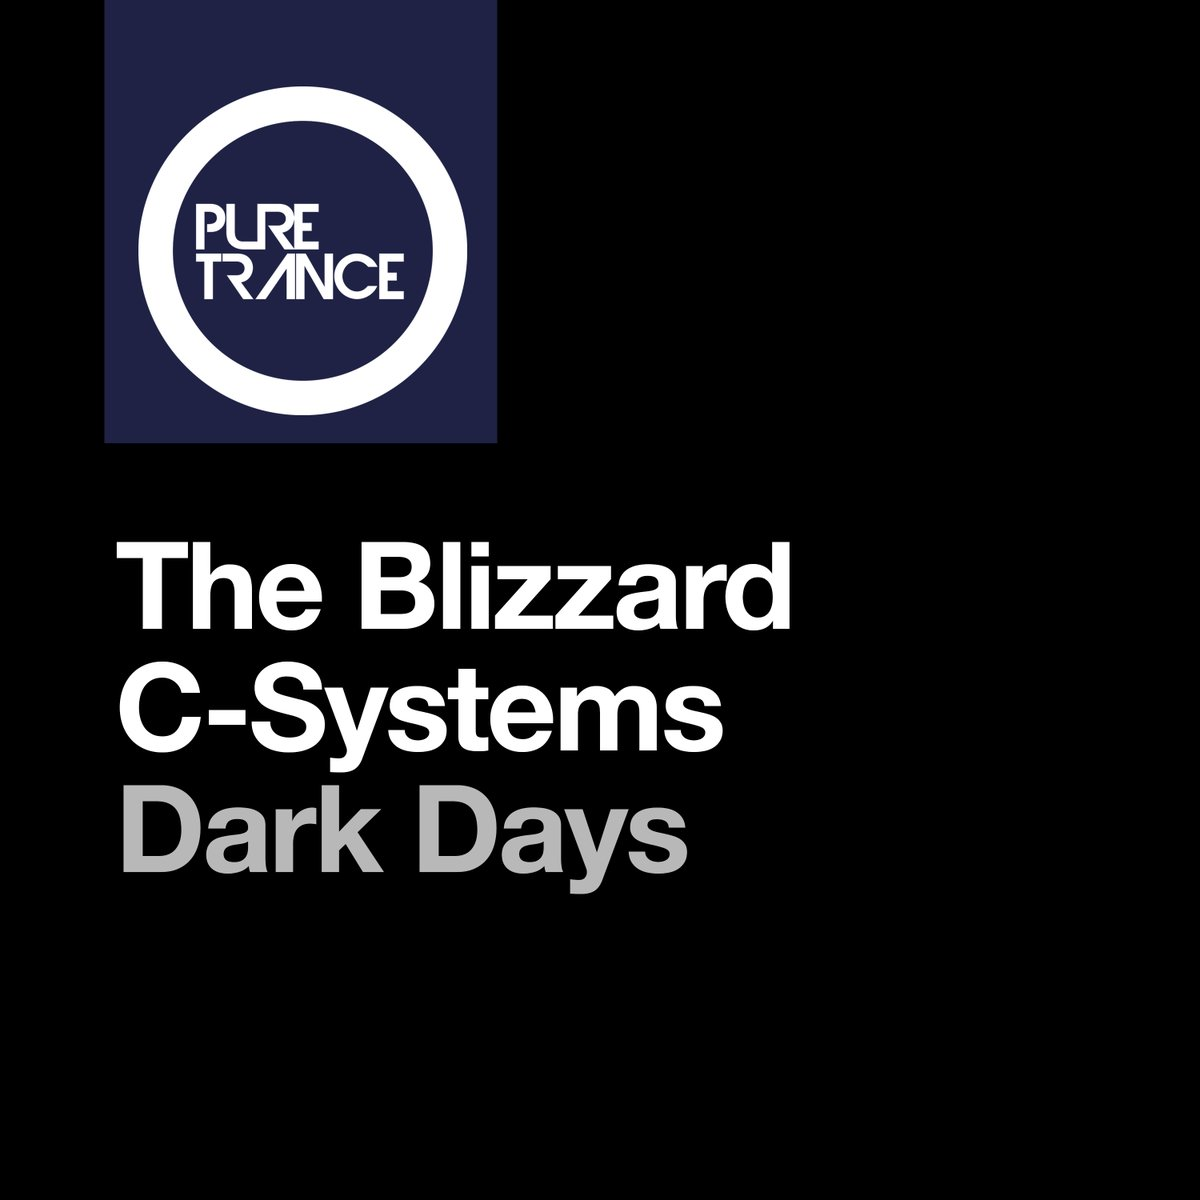 10. The Blizzard & C-Systems - Dark Days [Pure Trance] #BigTune #PureTrance #PTR254    Pre-save now available. https://t.co/6WkePn1Fly https://t.co/wHG31Vh486